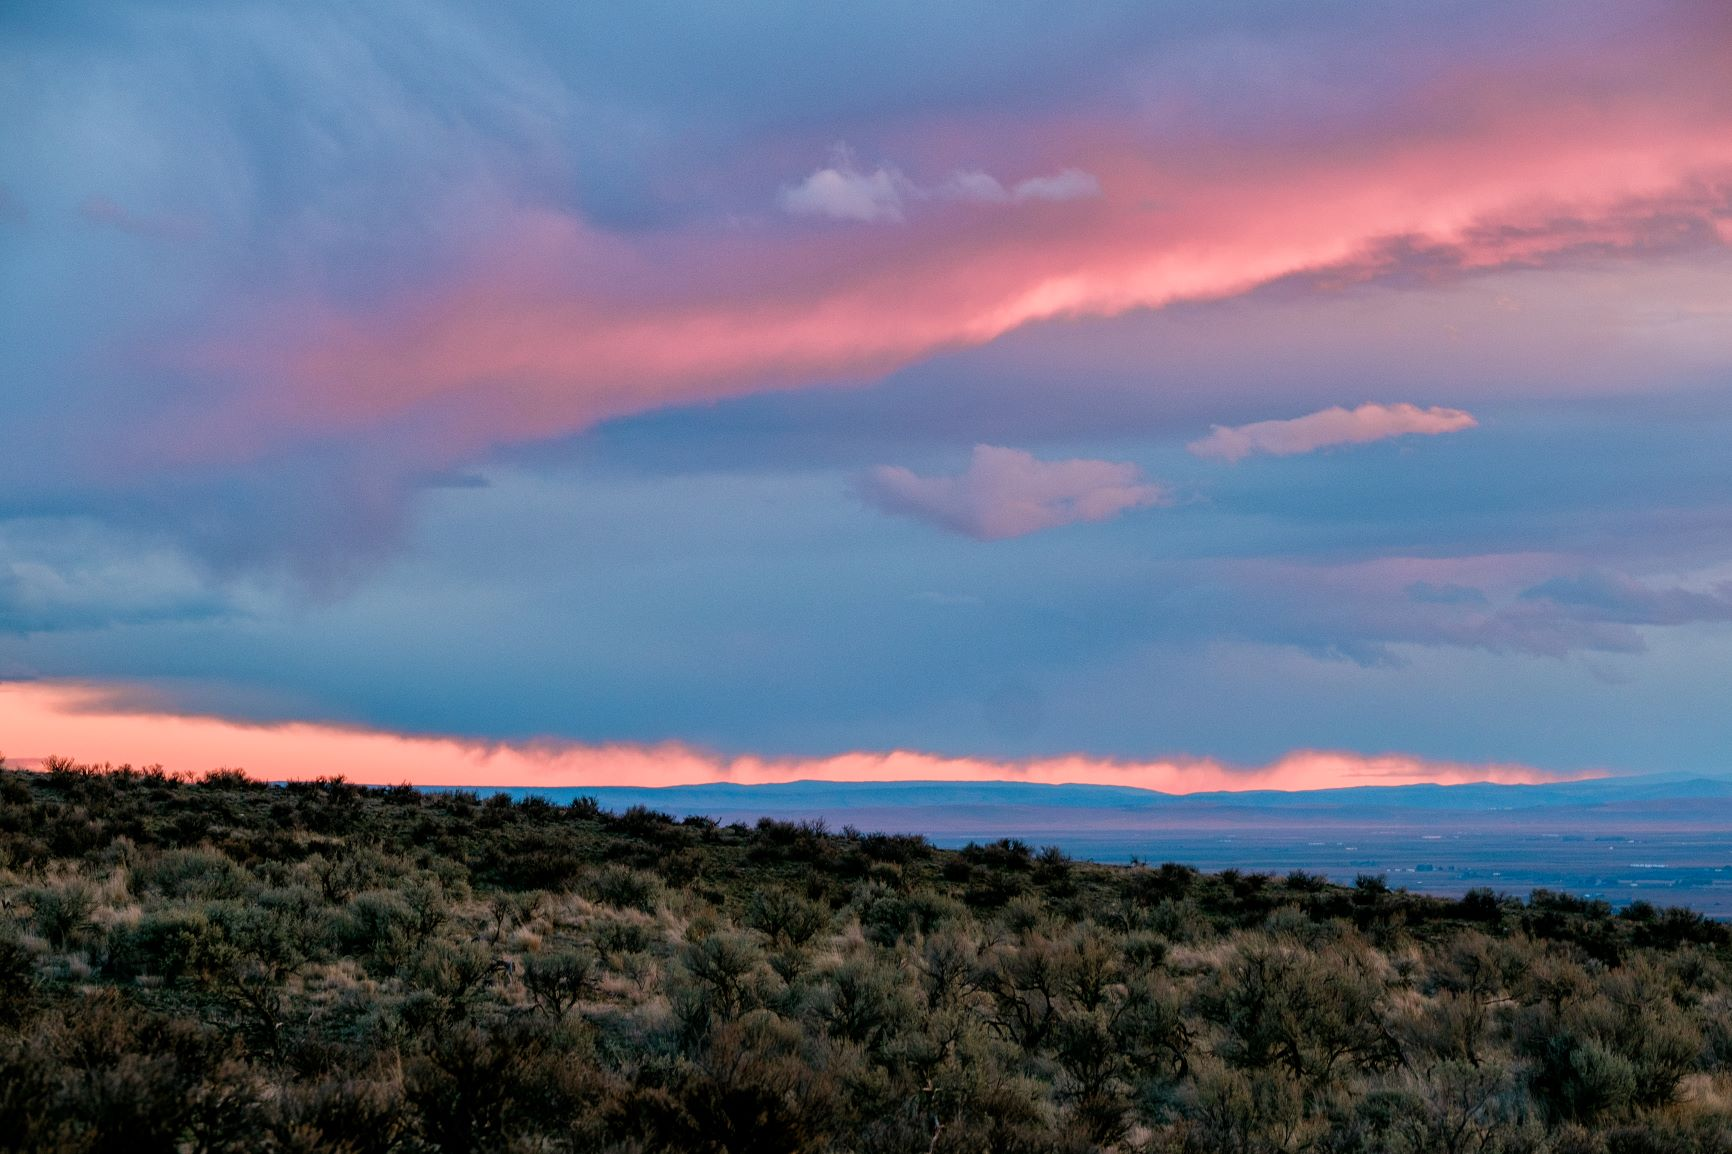 Sunset at Beezly Hill in Central Washington.